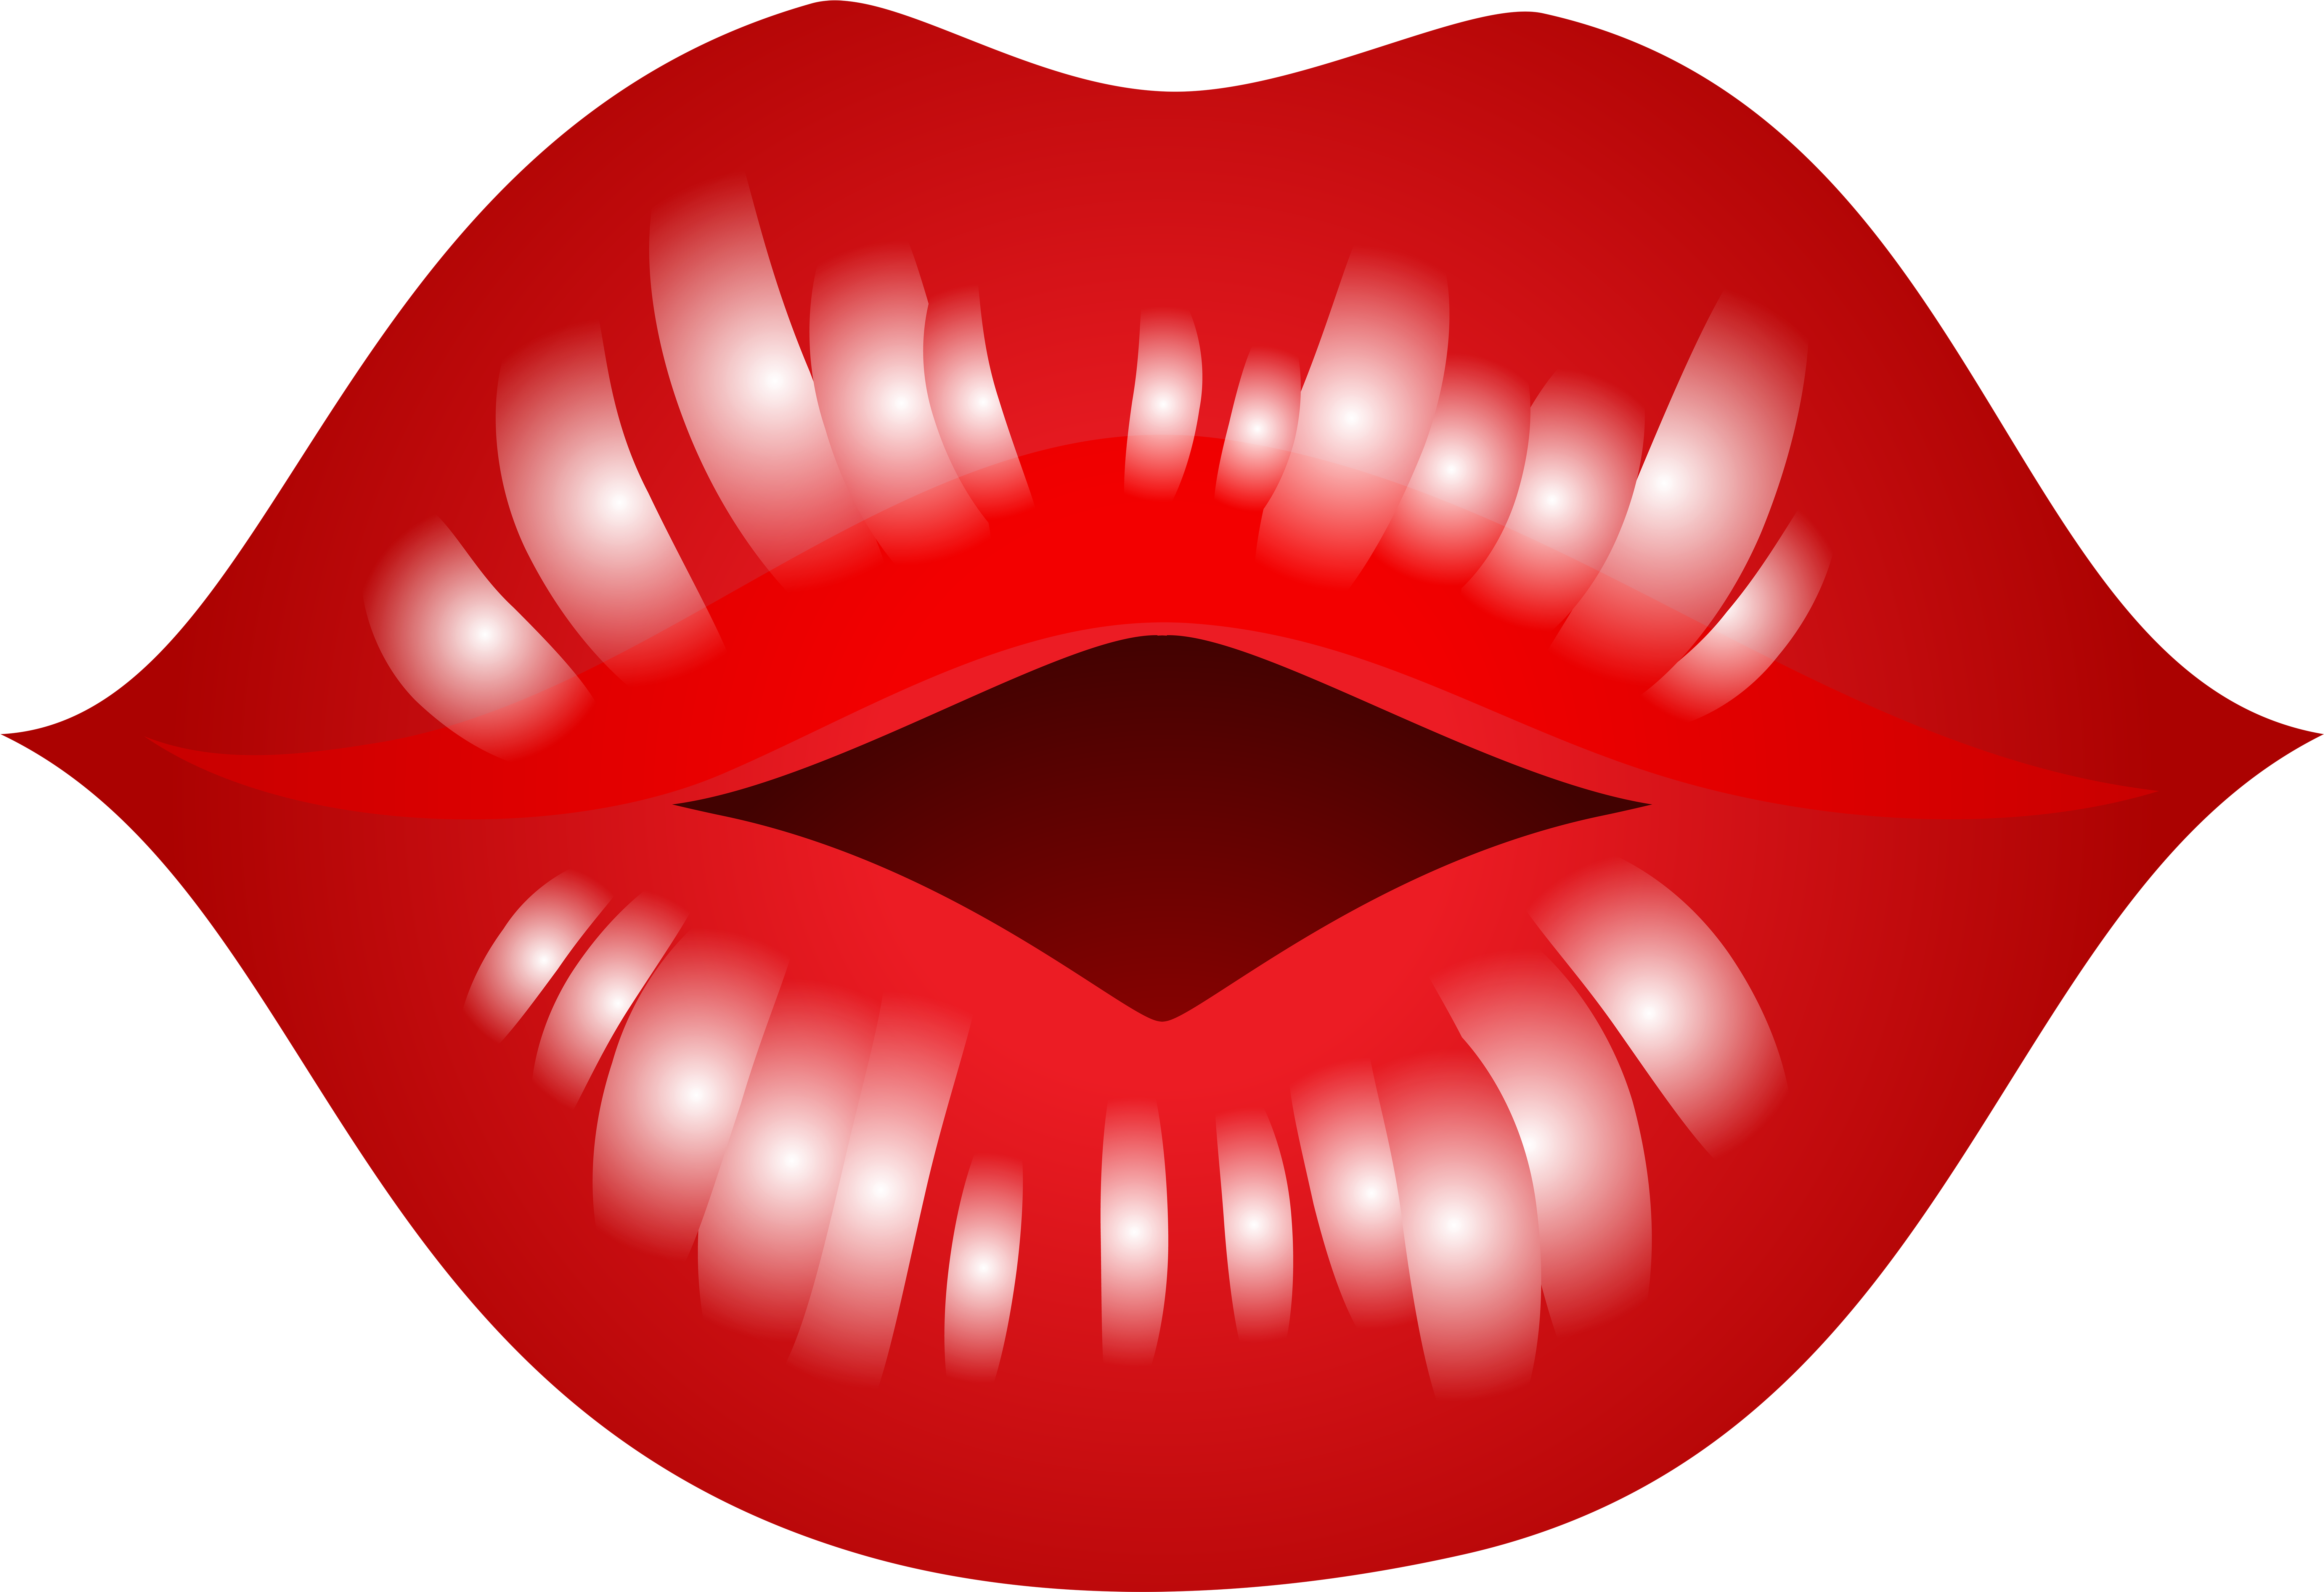 Kissing Lips Clipart.